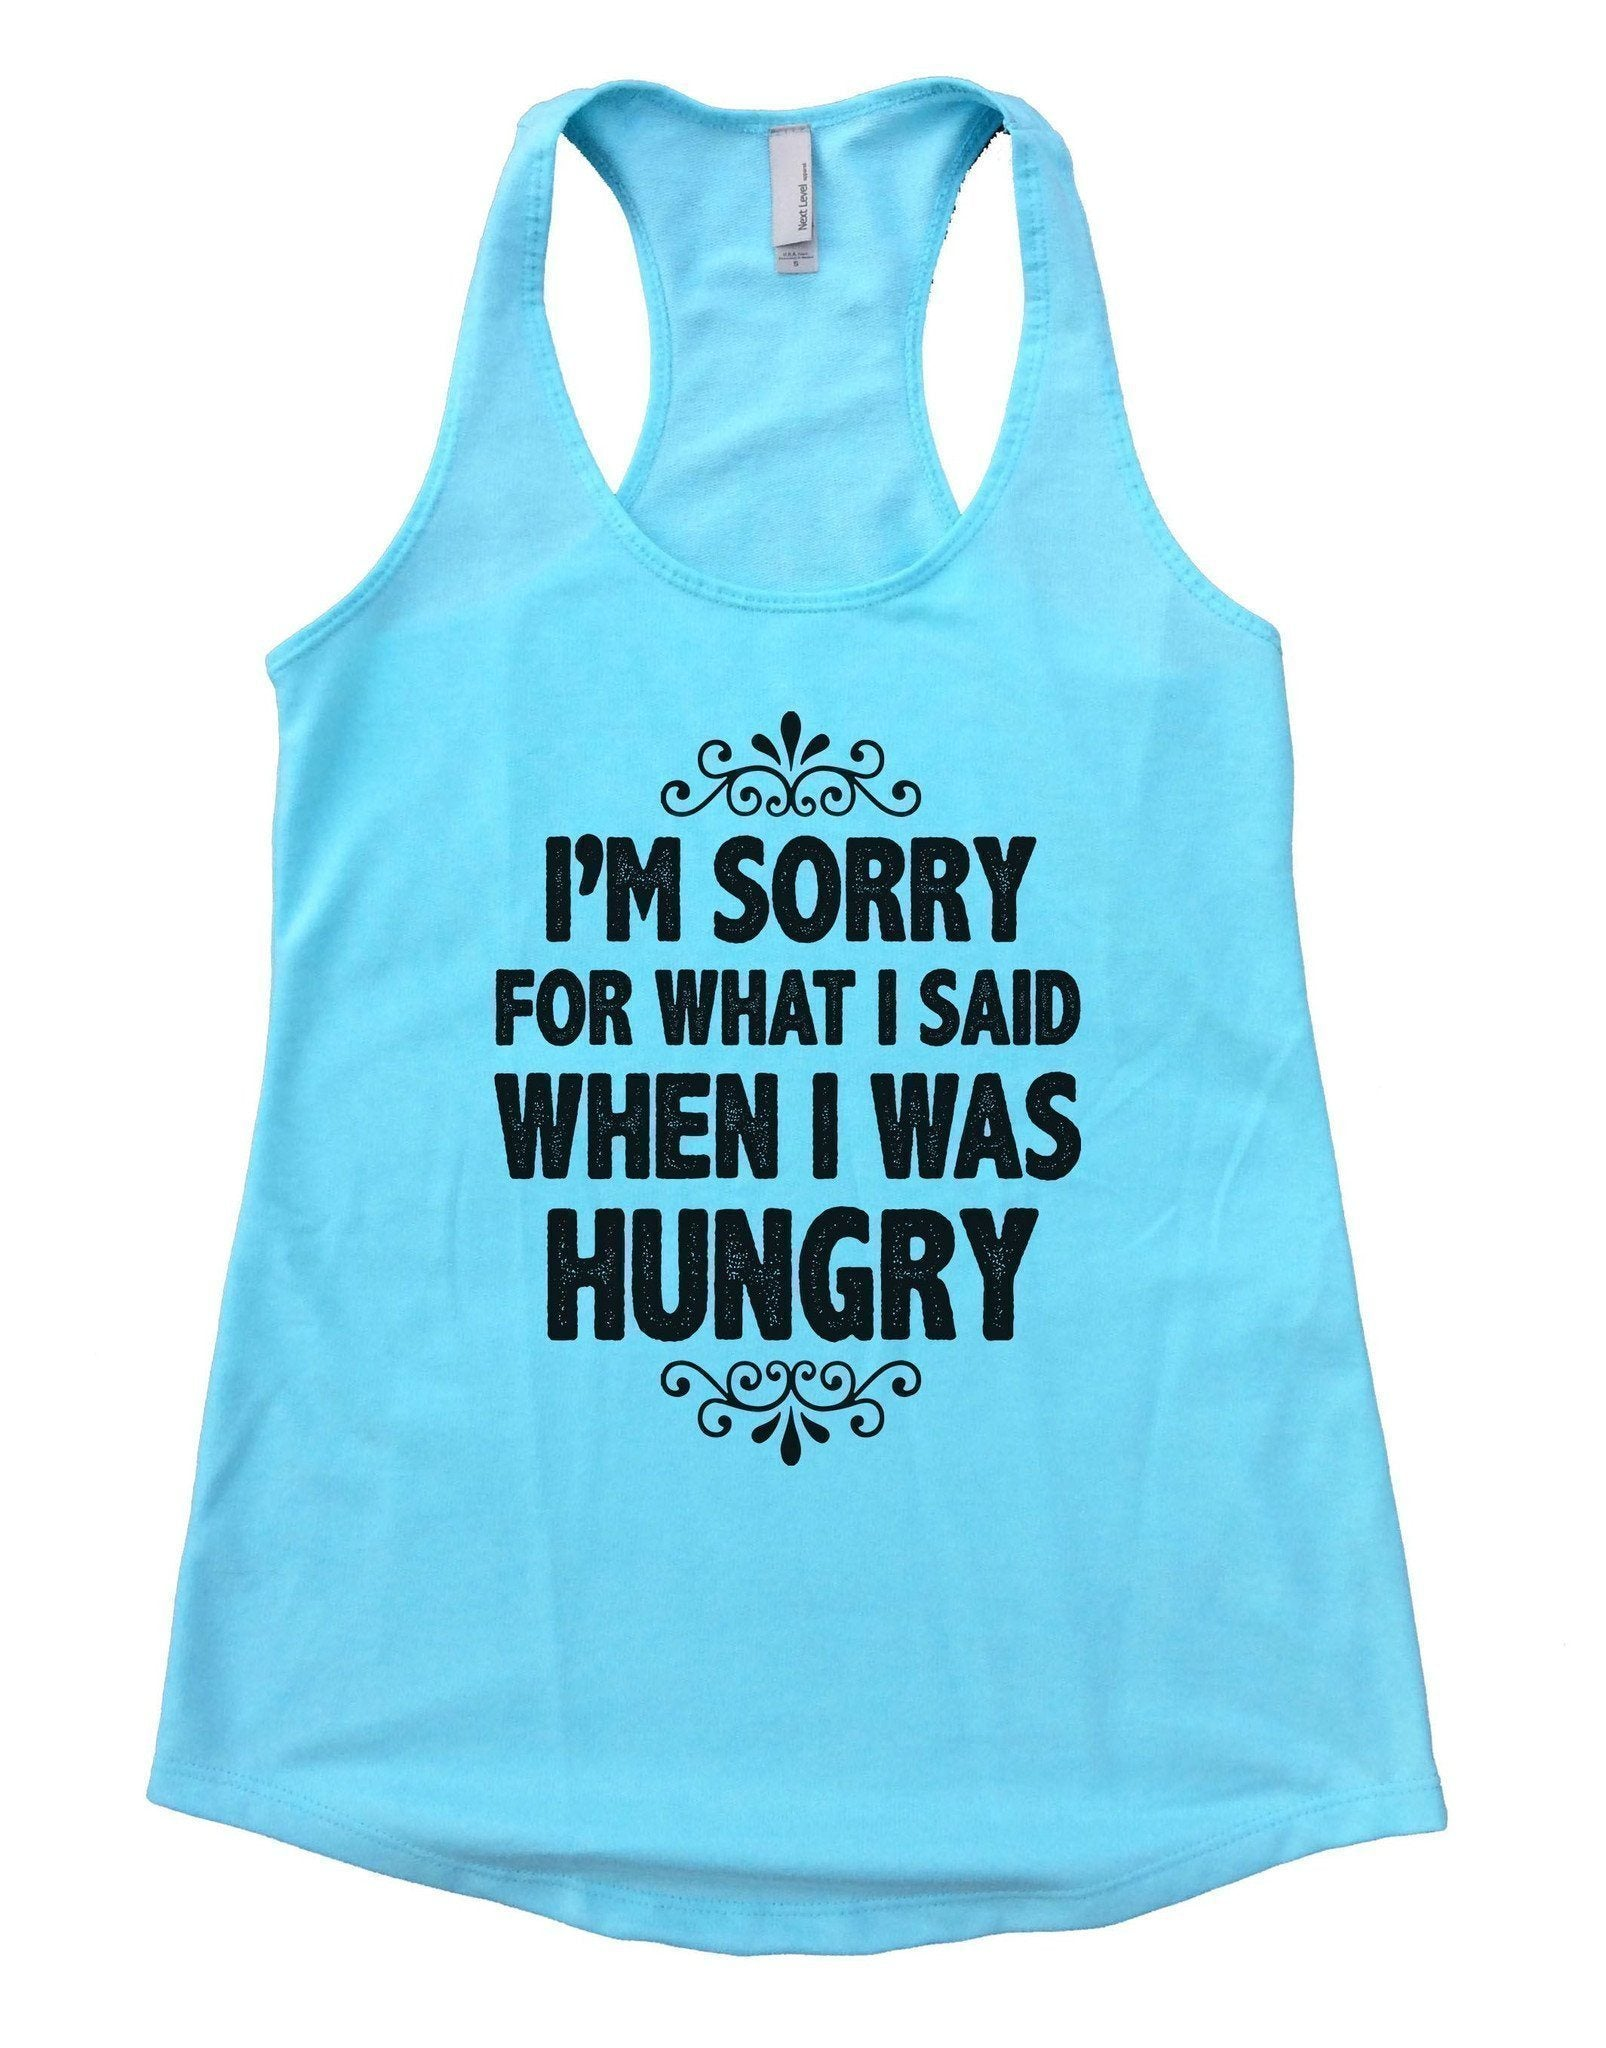 a4aa5c56c0a87 I m Sorry For What I Said When I Was Hungry Womens Workout Tank Top ...